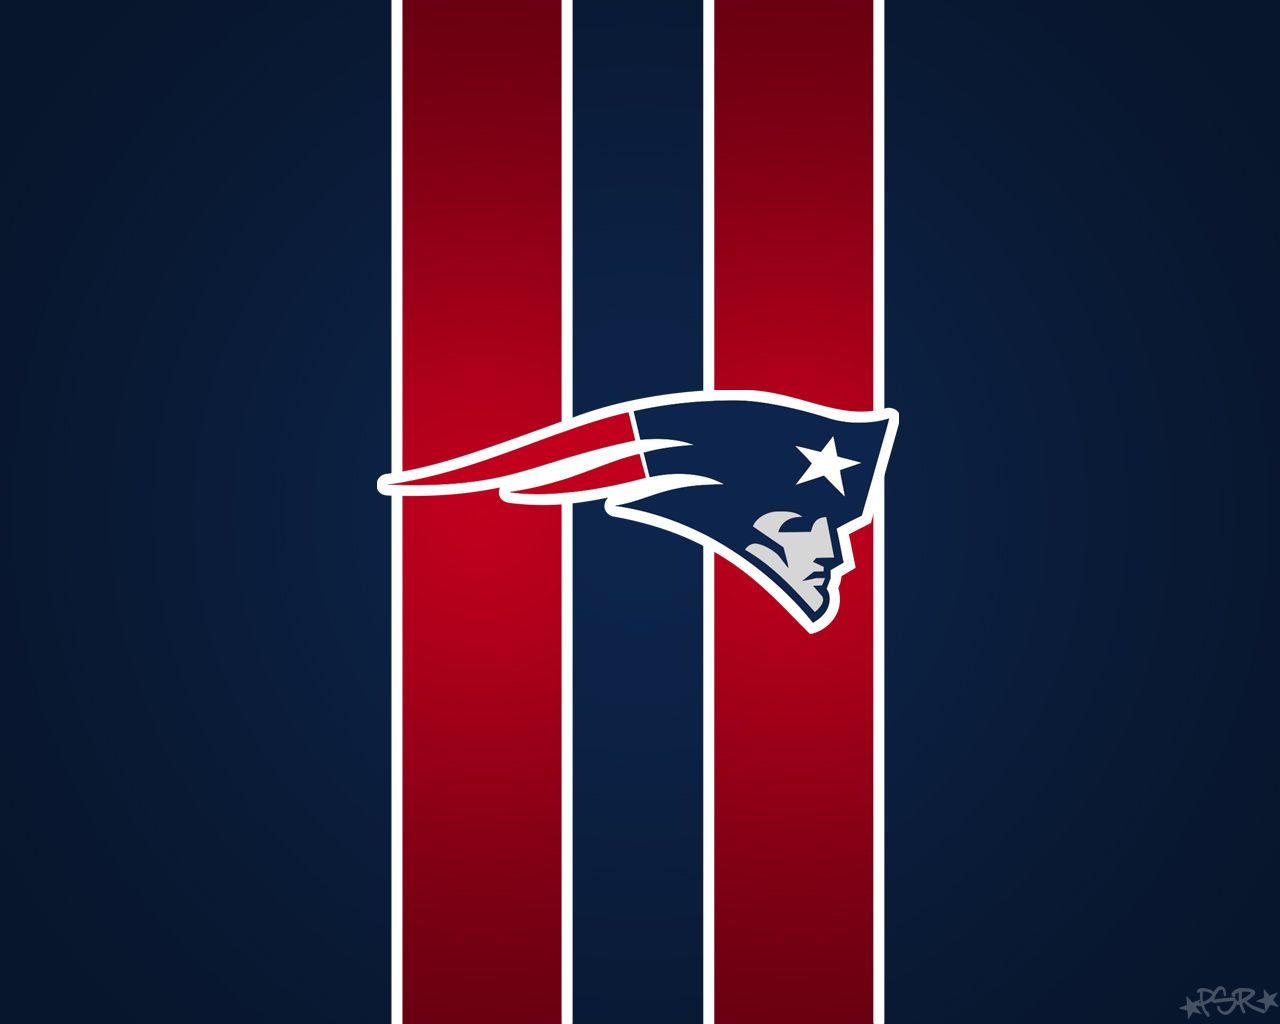 Patriots Wallpapers   Top Patriots Backgrounds   WallpaperAccess 1280x1024